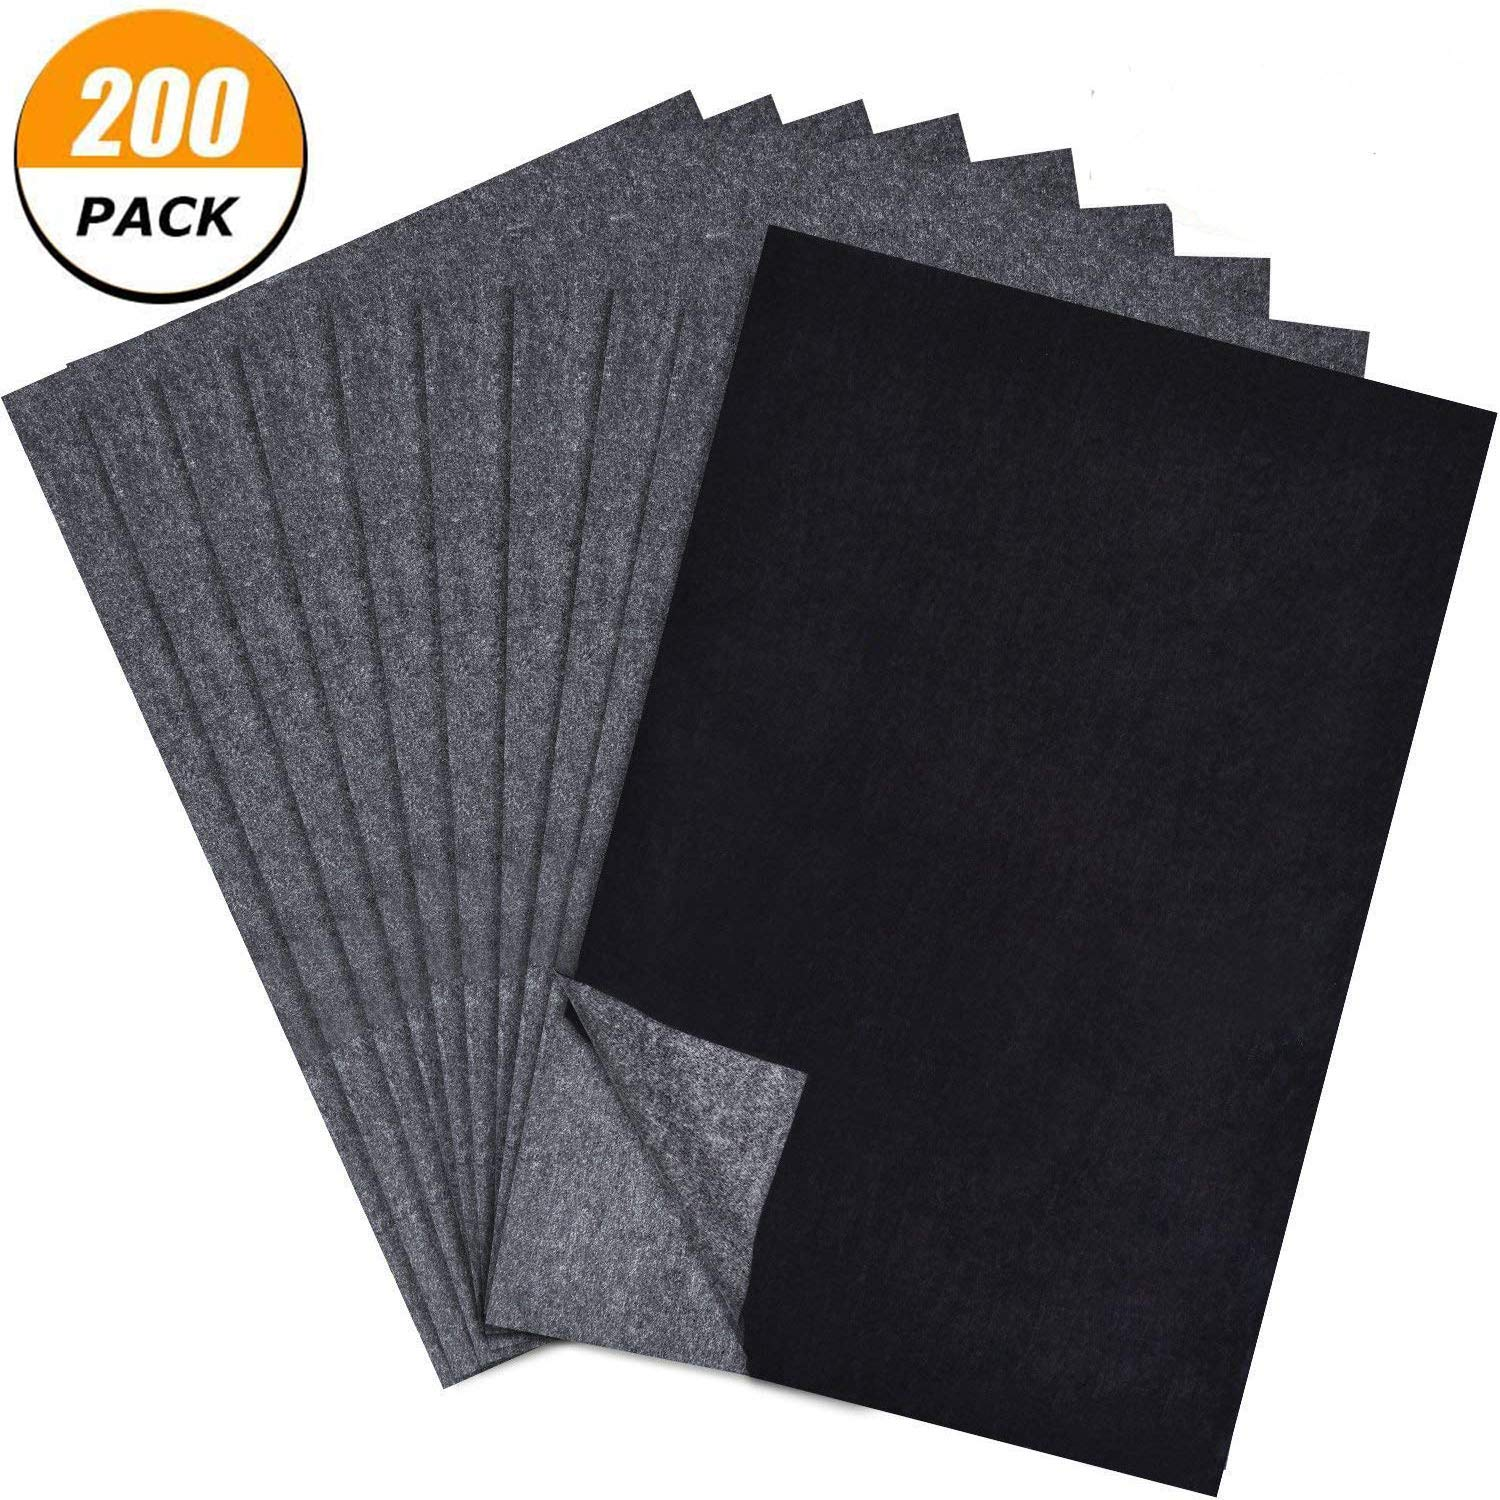 200 Sheets Carbon Paper Black Carbon Transfer (8.5 x 11.5 inch) Tracing Paper for Wood, Paper, Canvas and Other Art Surfaces (Black) Senmink